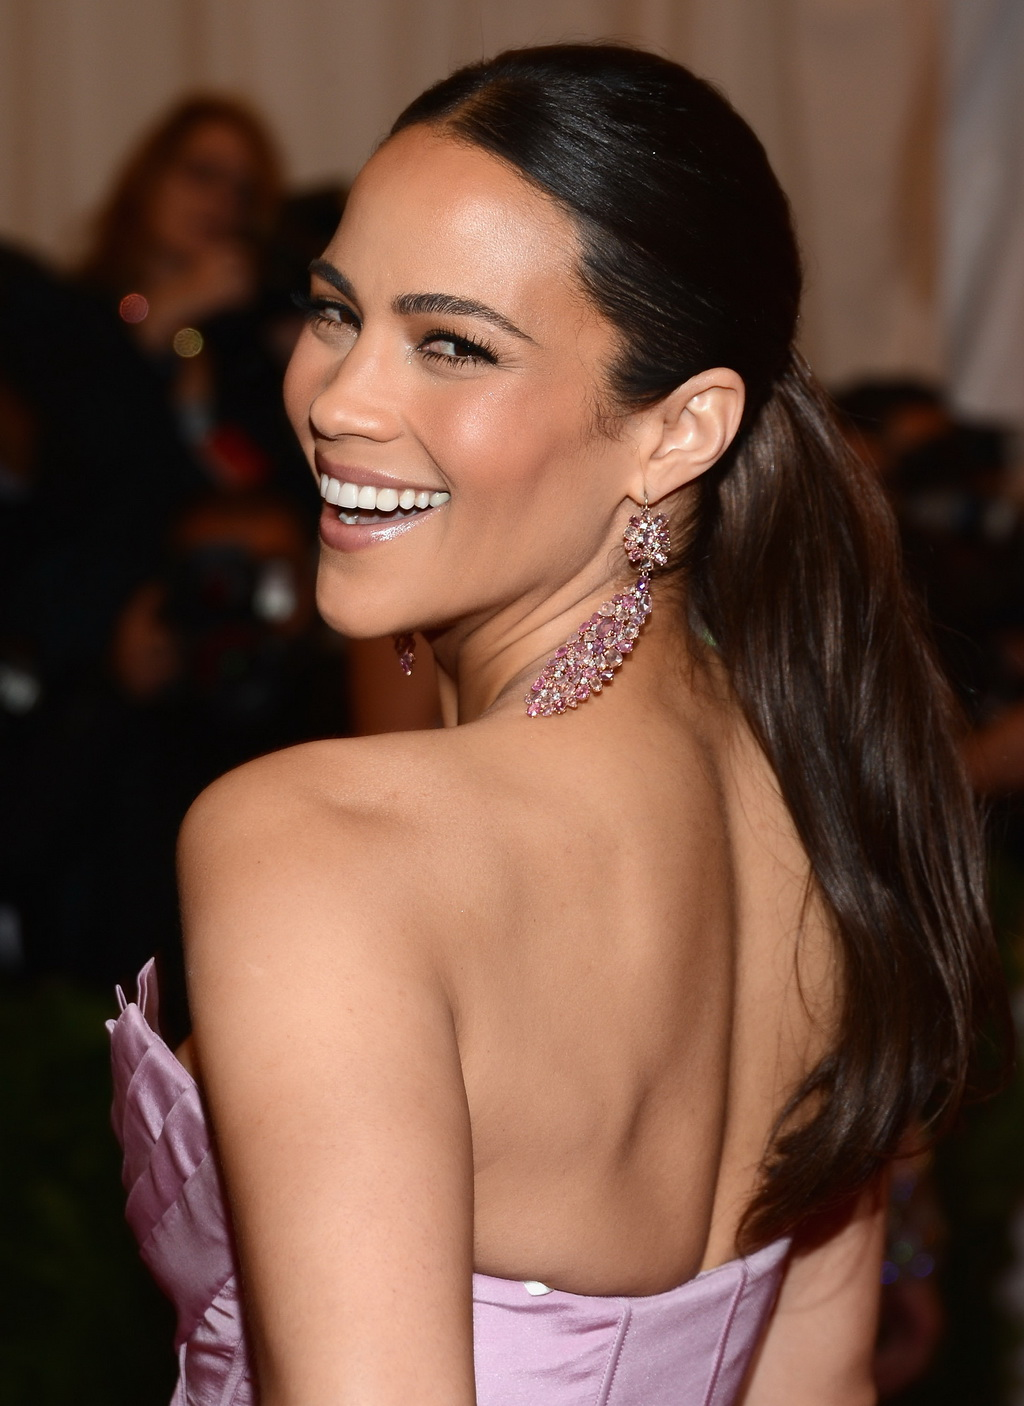 Boobs Paula Patton nude (93 foto) Paparazzi, Instagram, braless